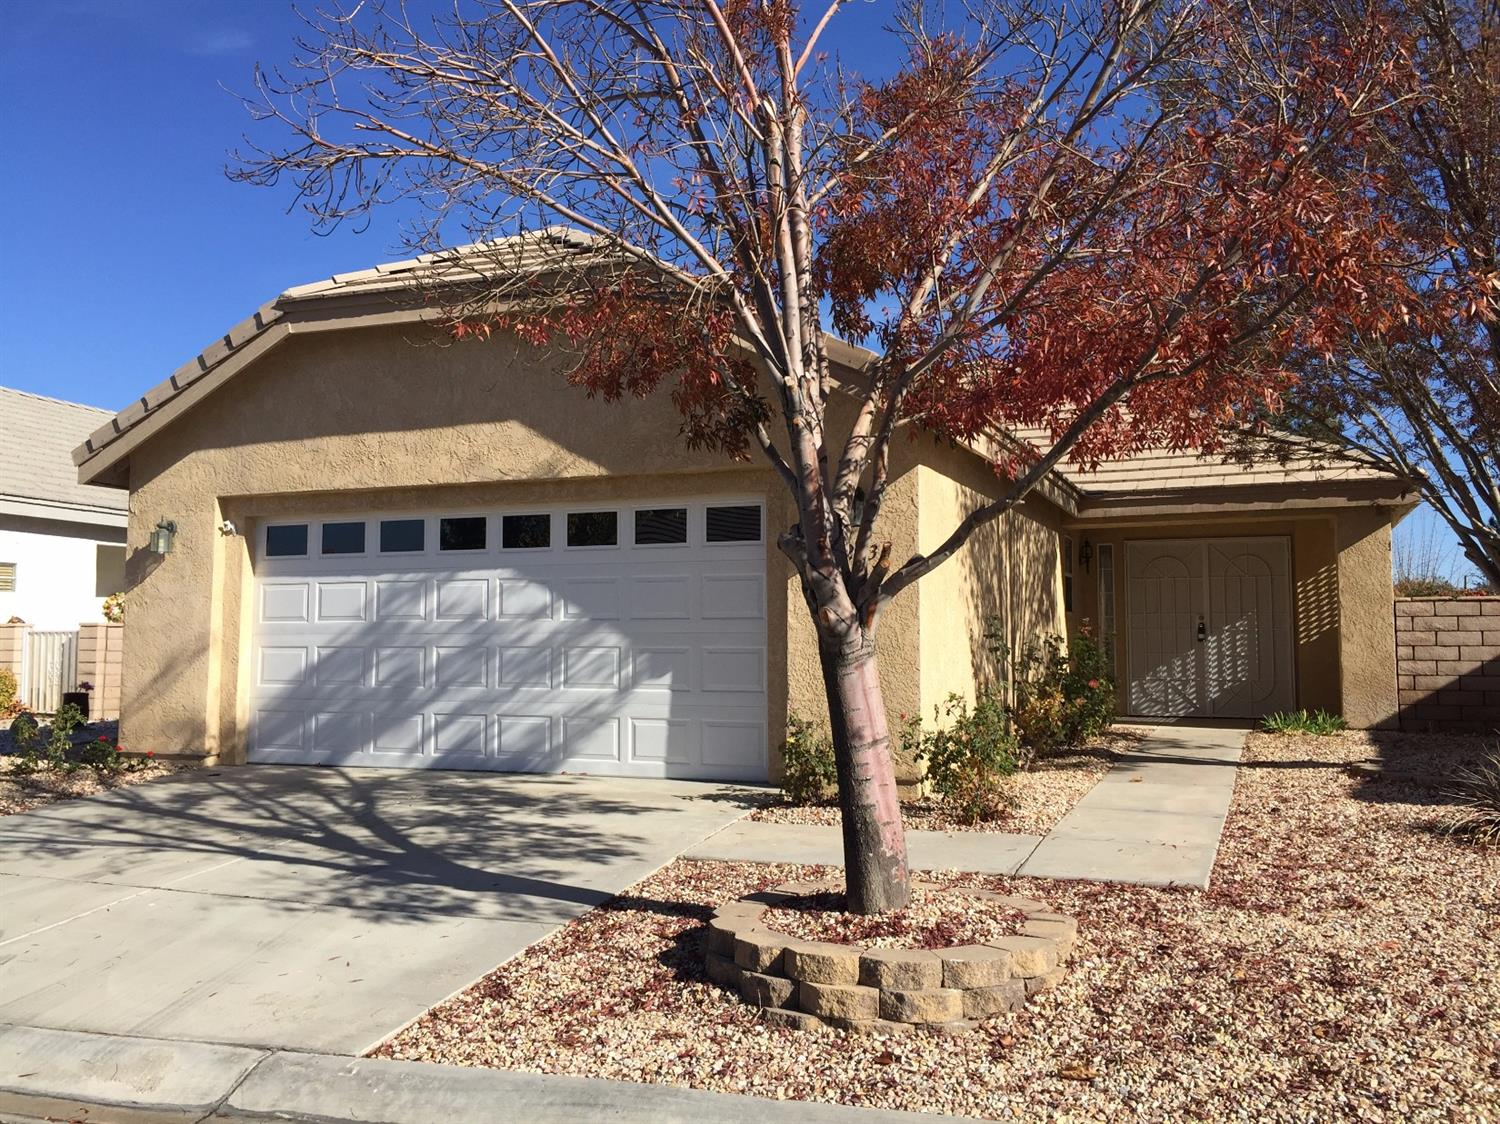 All homes for sale 55places 11253 pleasant hills drive apple valley ca 92308 malvernweather Choice Image